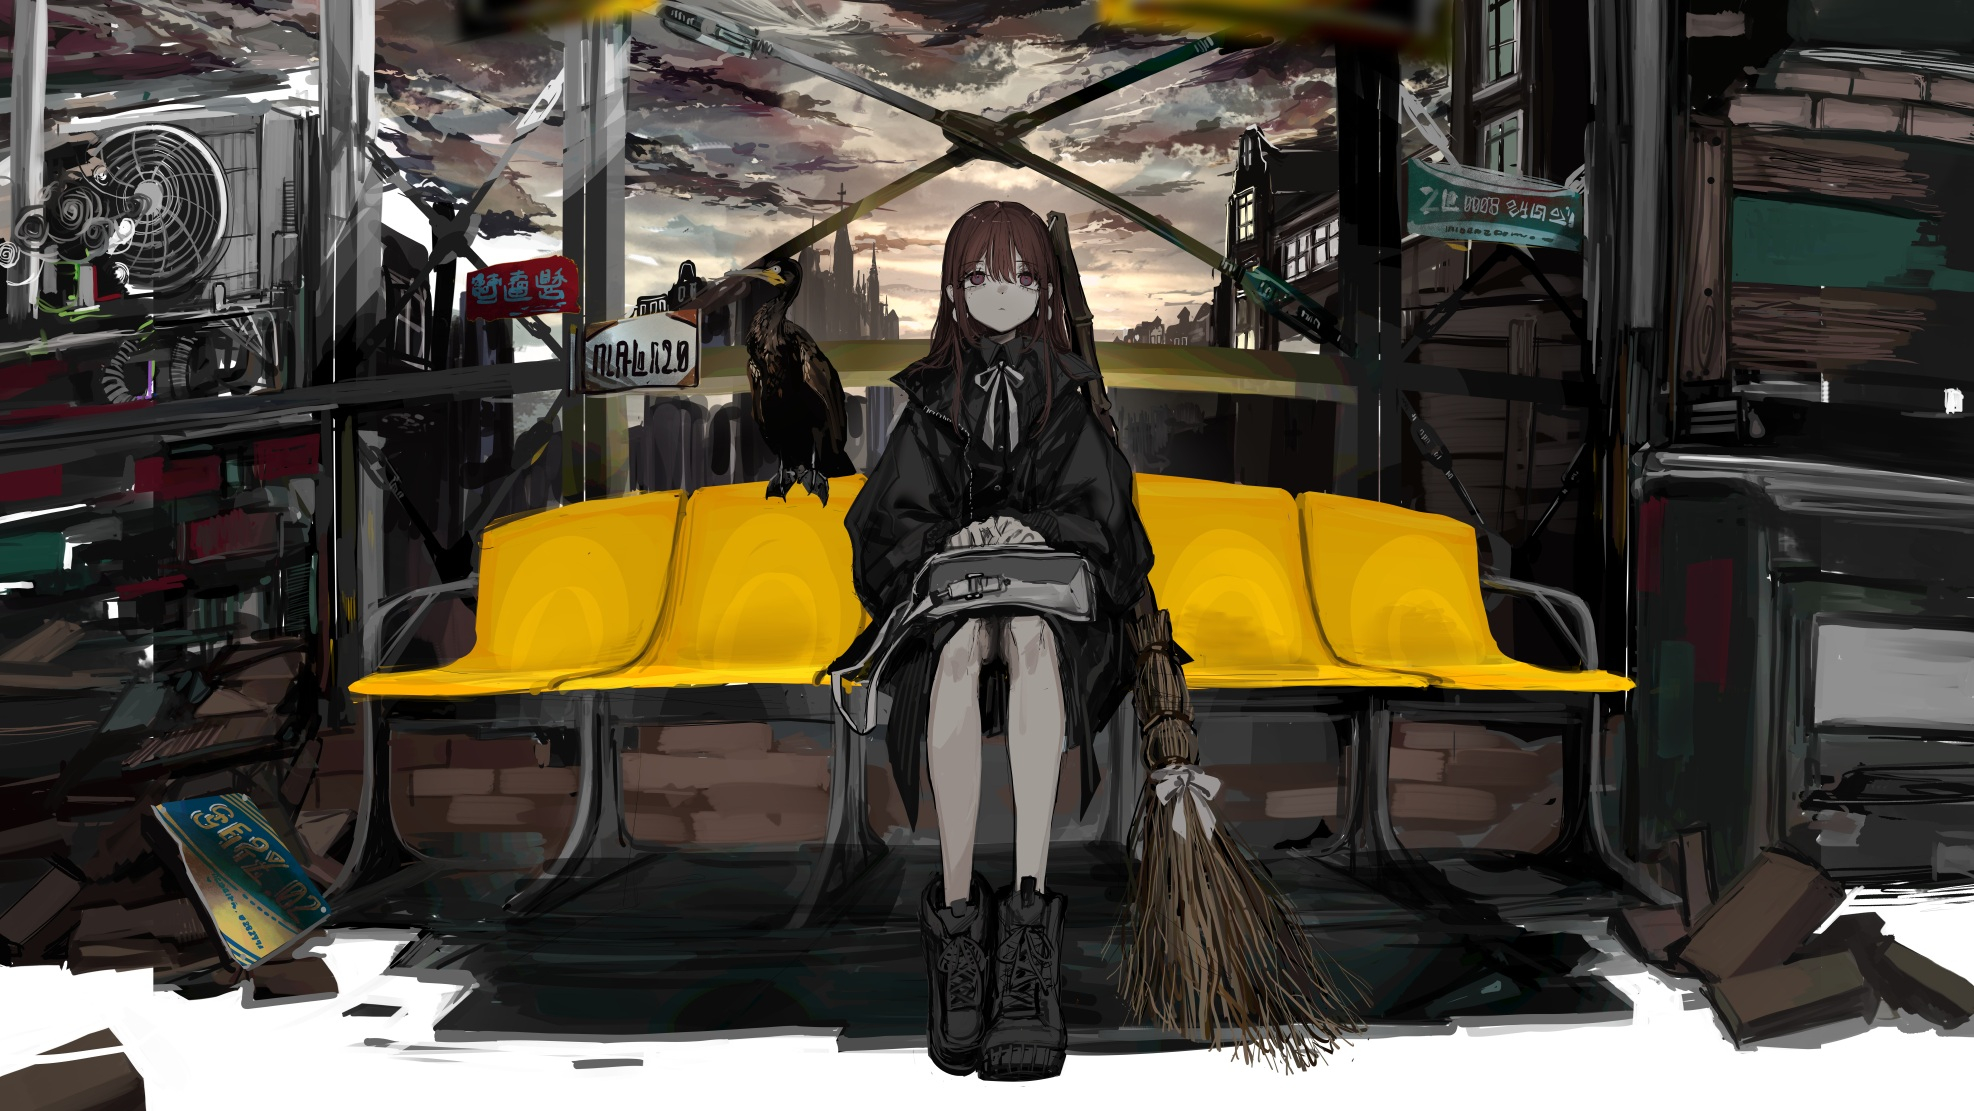 Gothic Witch Broom Brunette Hair Bangs Hand Bags Sitting Down Raven Leather Boots Jacket Brown Eyes  1974x1111